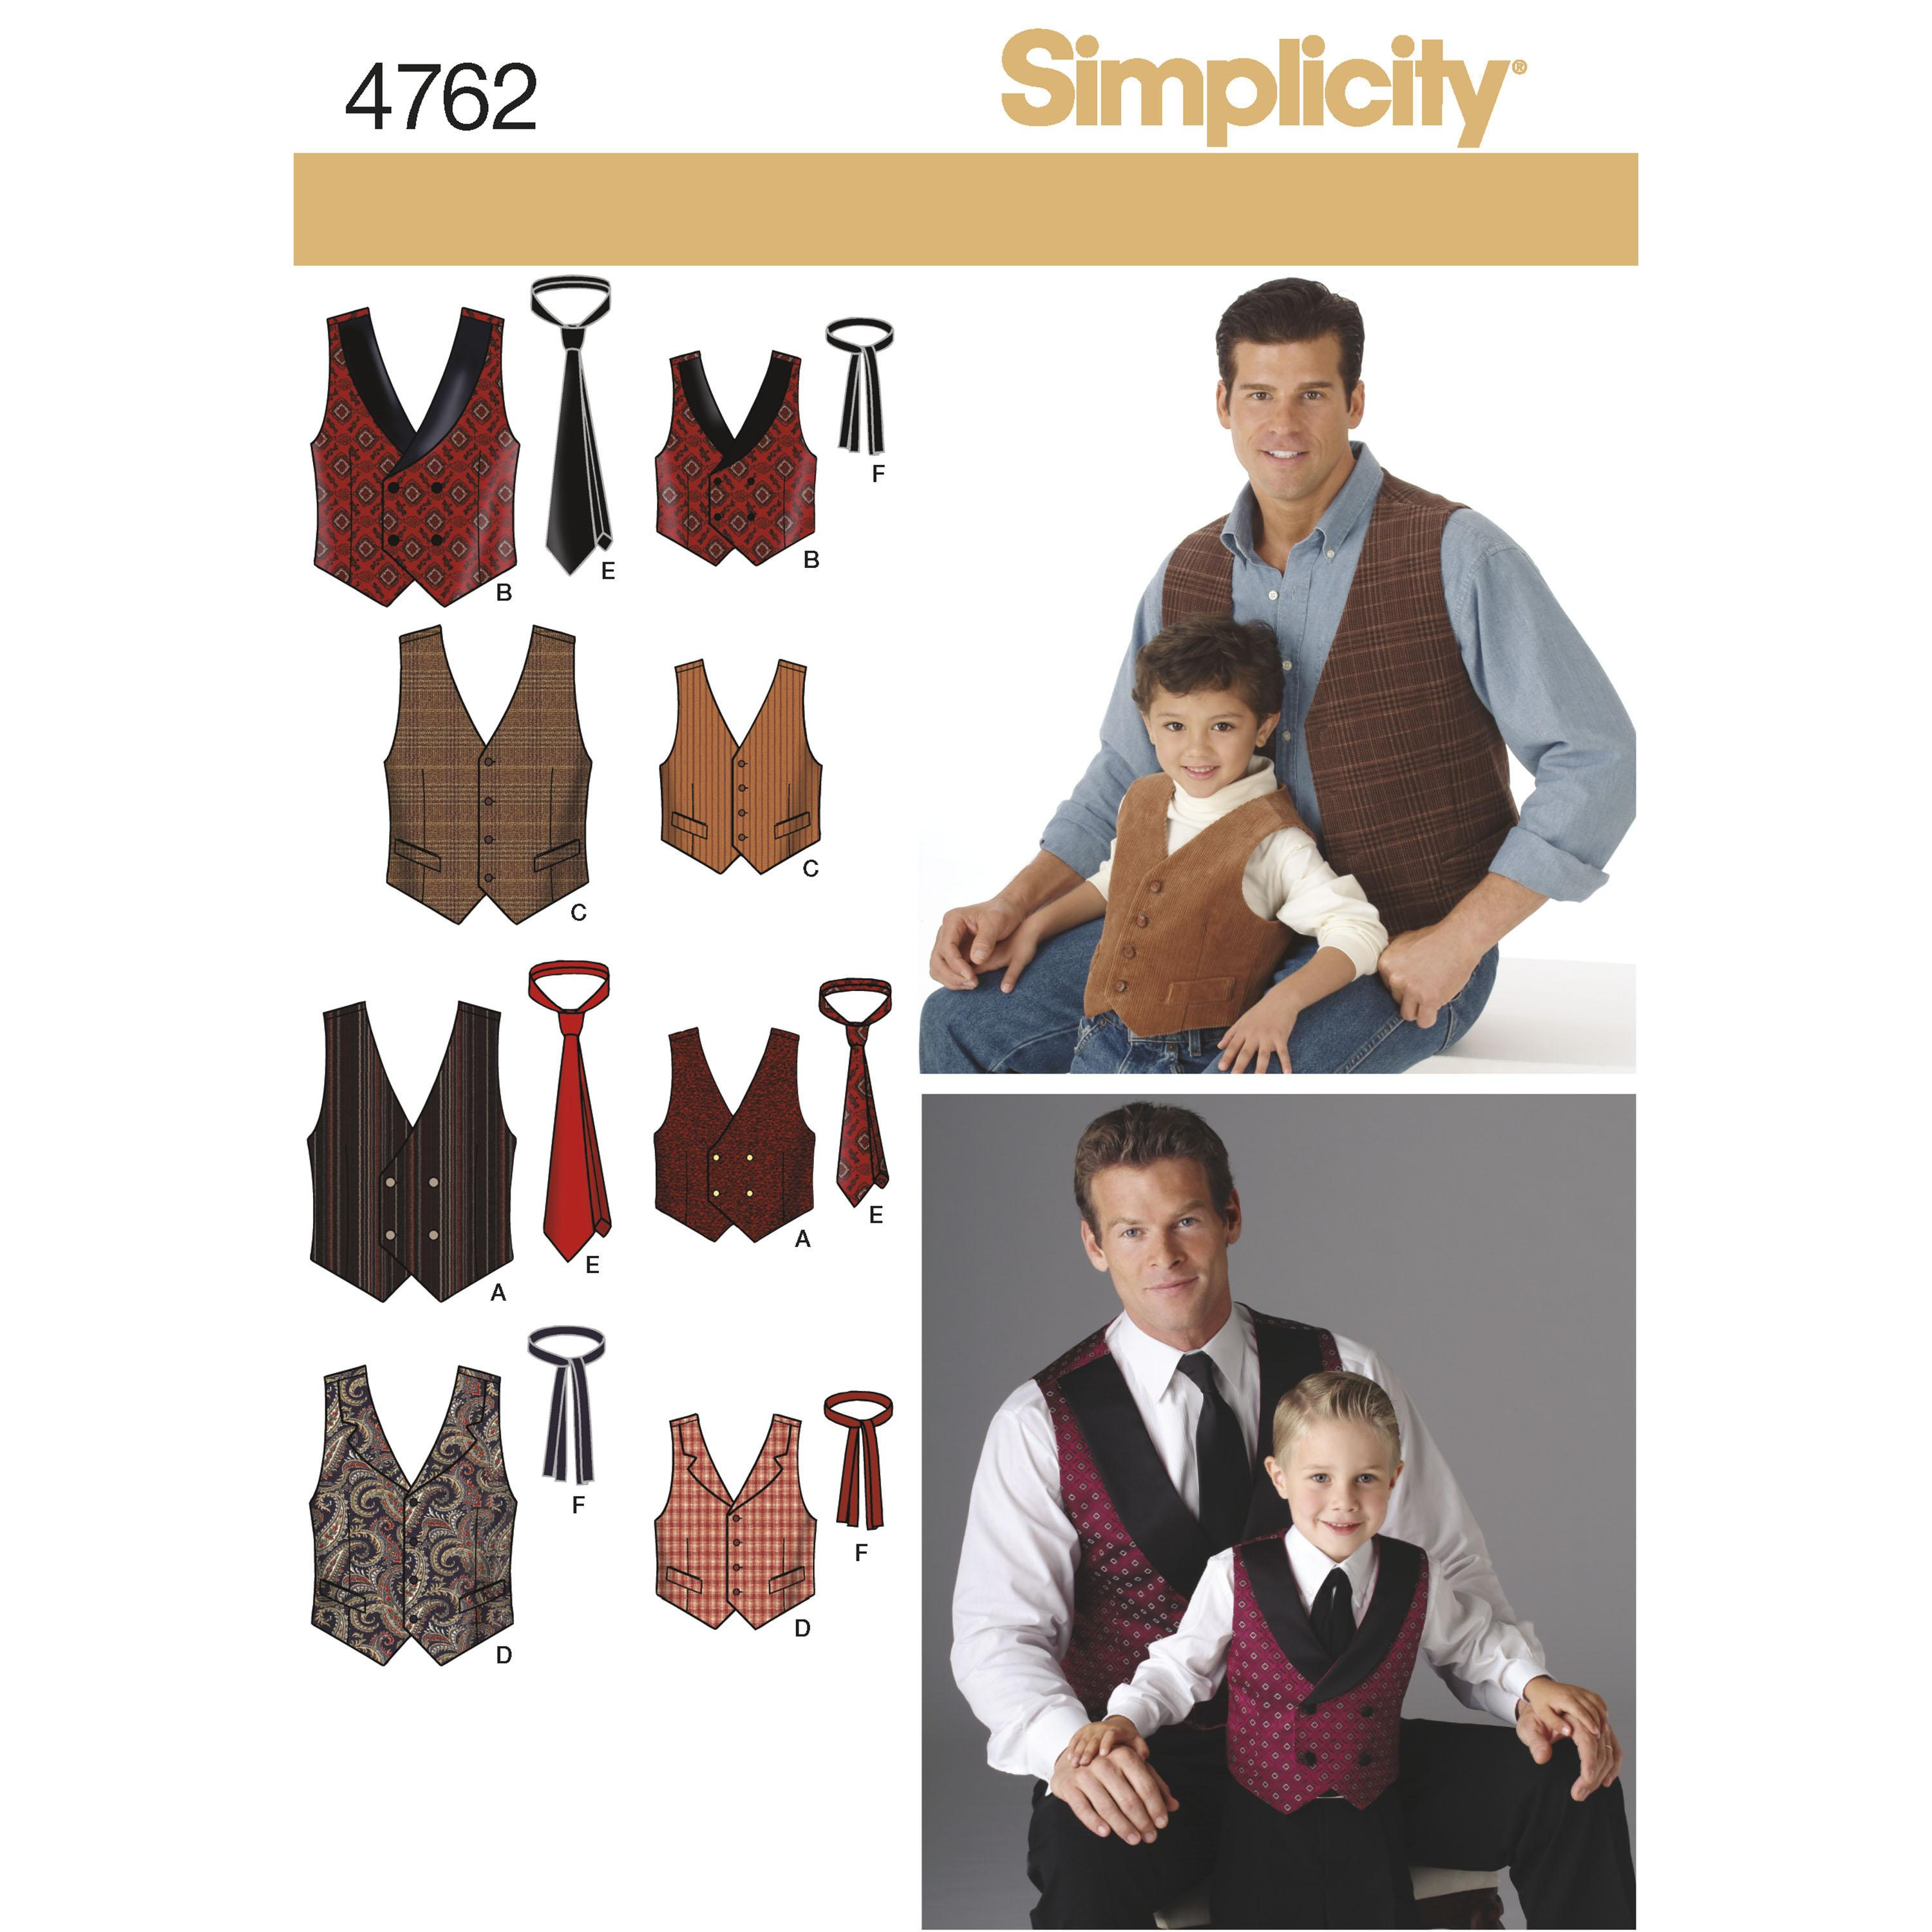 Simplicity S4762 Boys and Men Vests and Ties